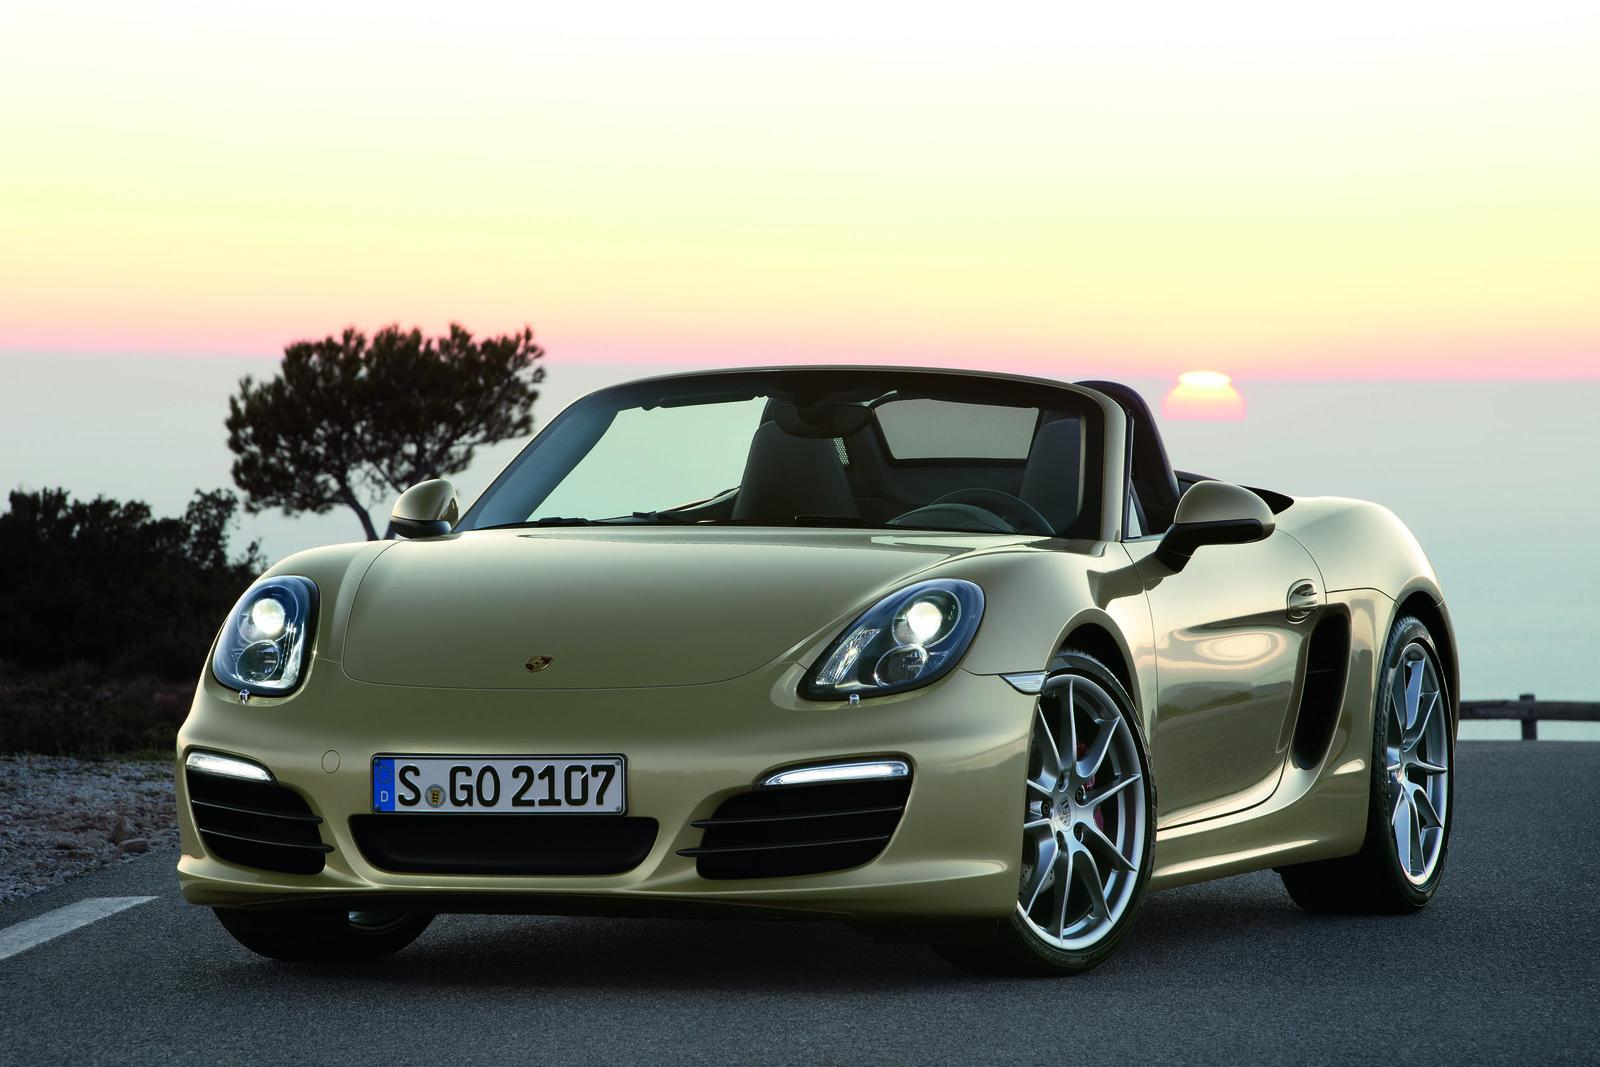 Porsche Boxster S 2013 photo - 12